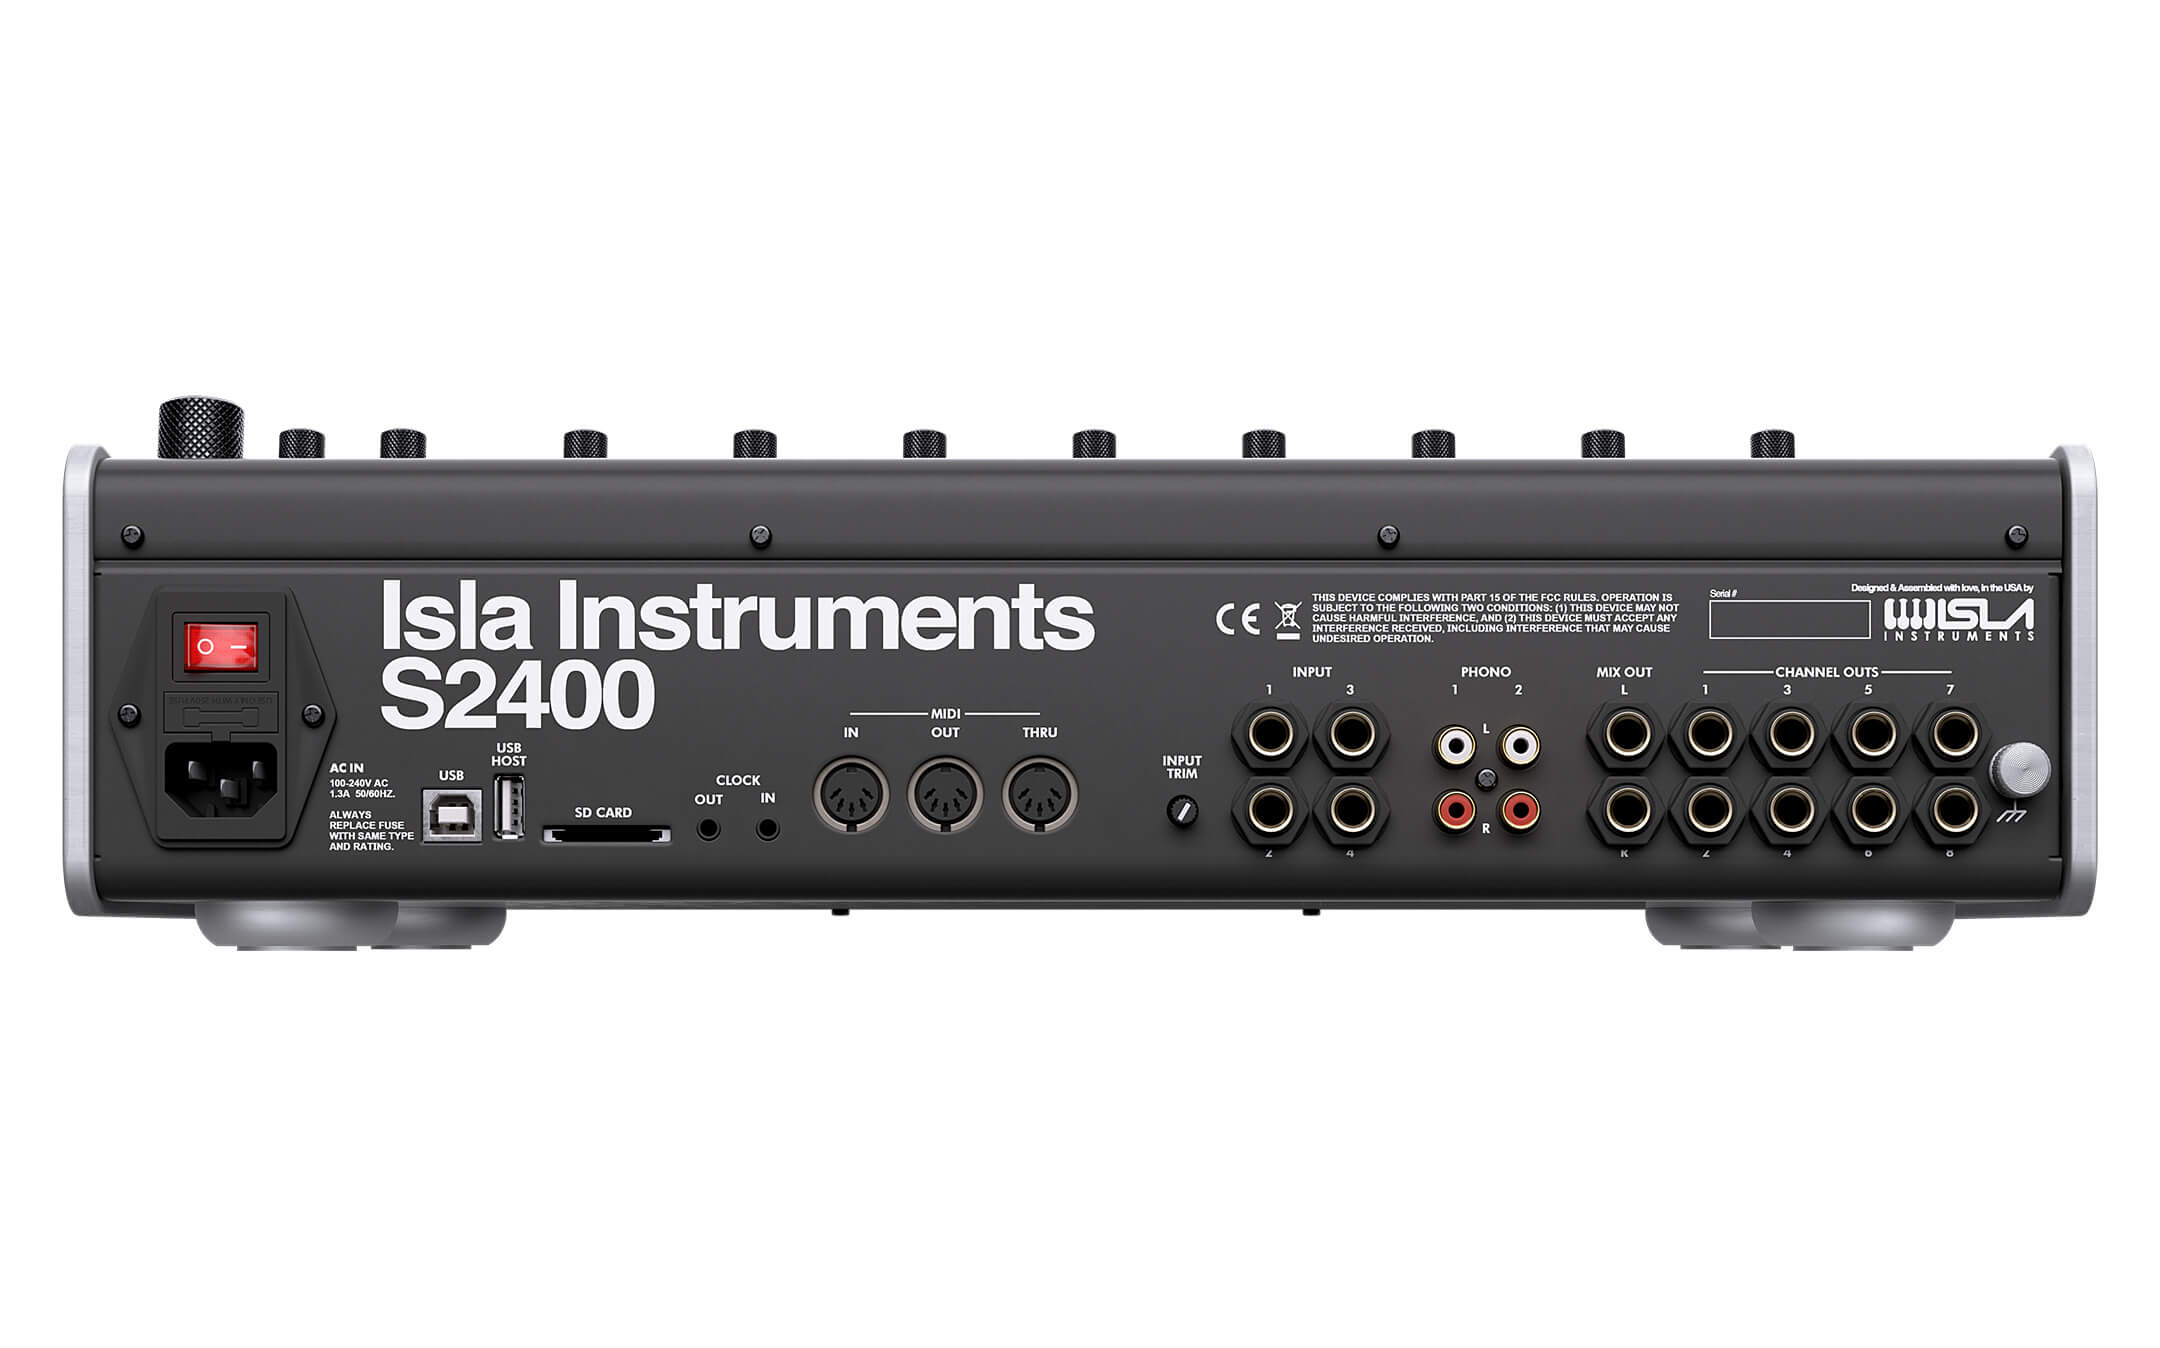 Isla Instruments S2400 Review